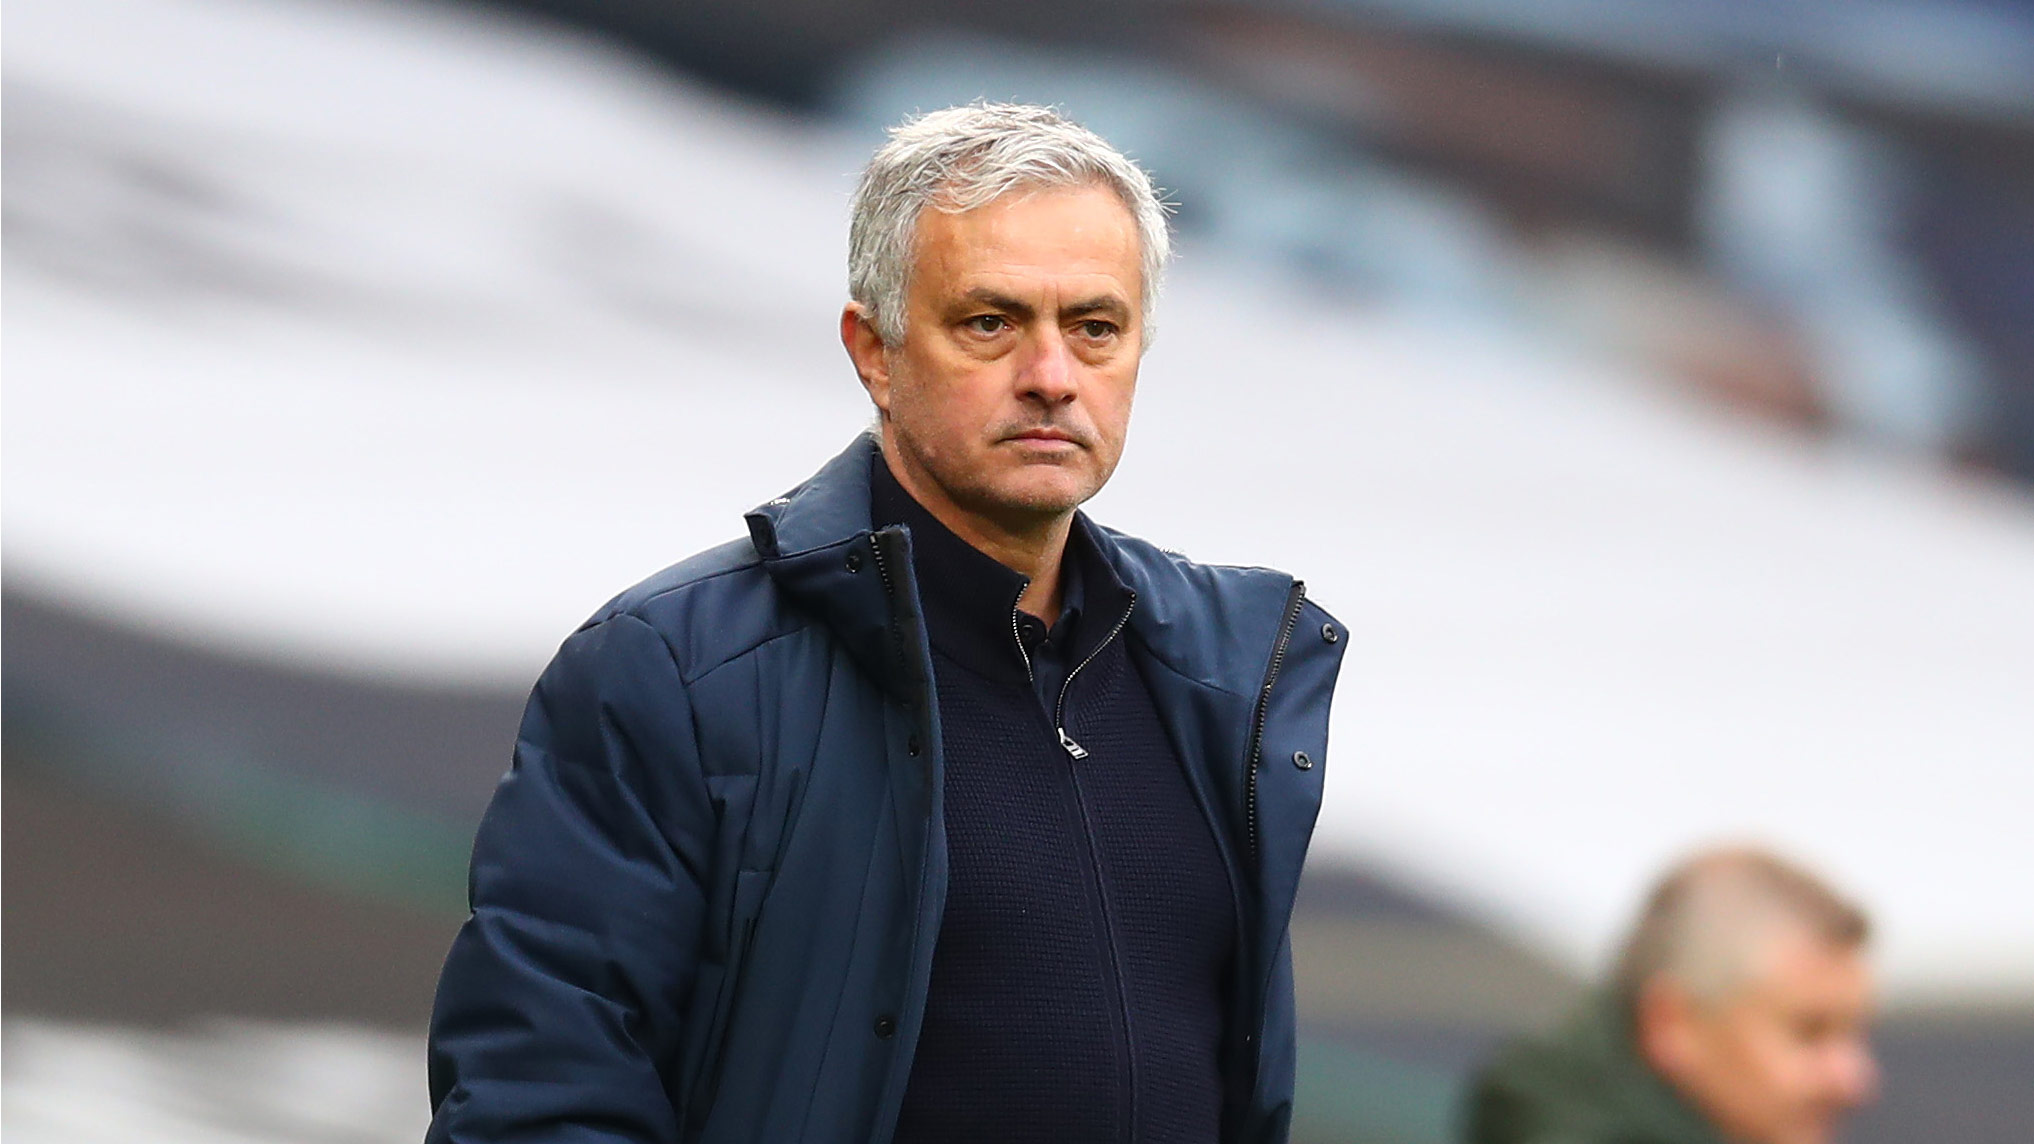 Jose Mourinho, Manager of Tottenham Hotspur, attends a Premier League match against Manchester United on April 11, in London, England.